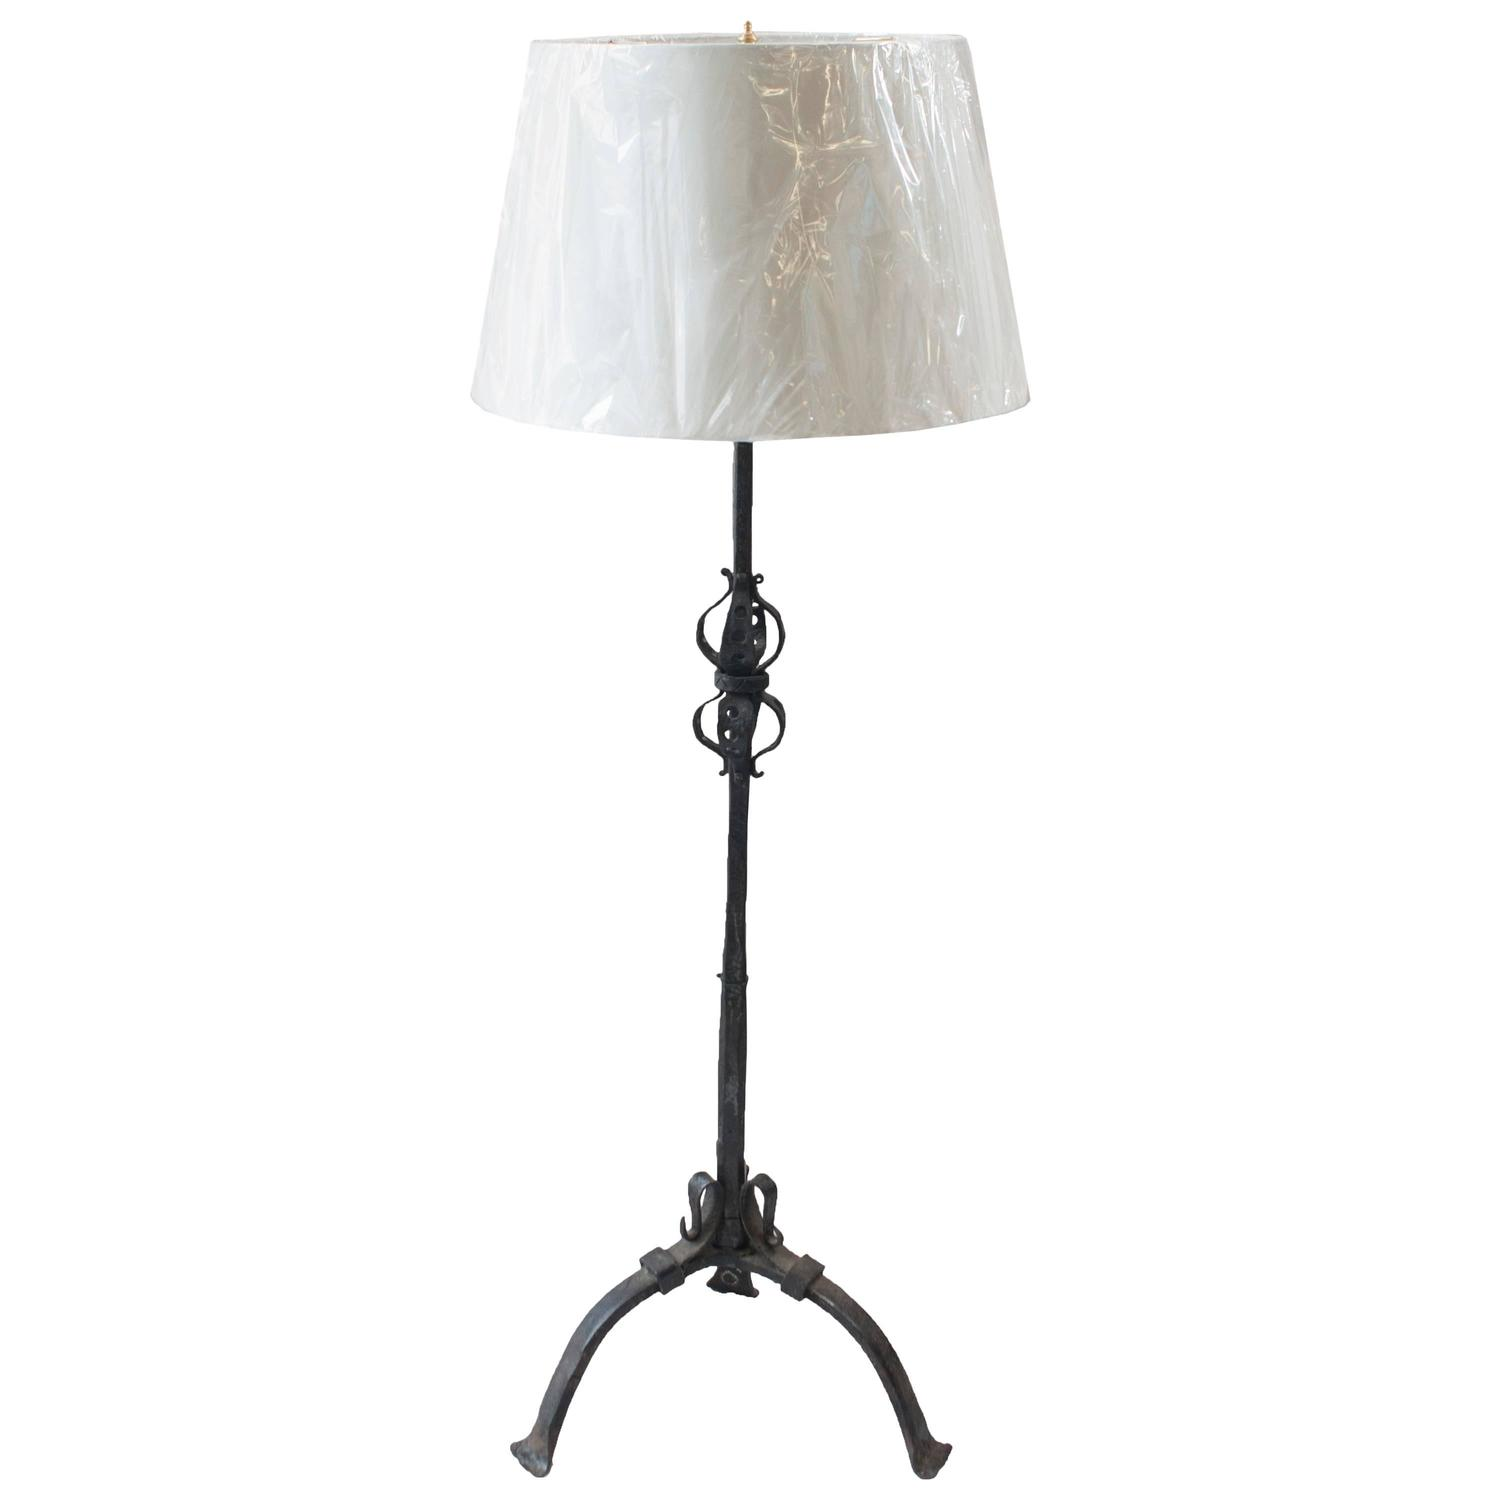 black wrought iron floor lamp for sale at 1stdibs. Black Bedroom Furniture Sets. Home Design Ideas